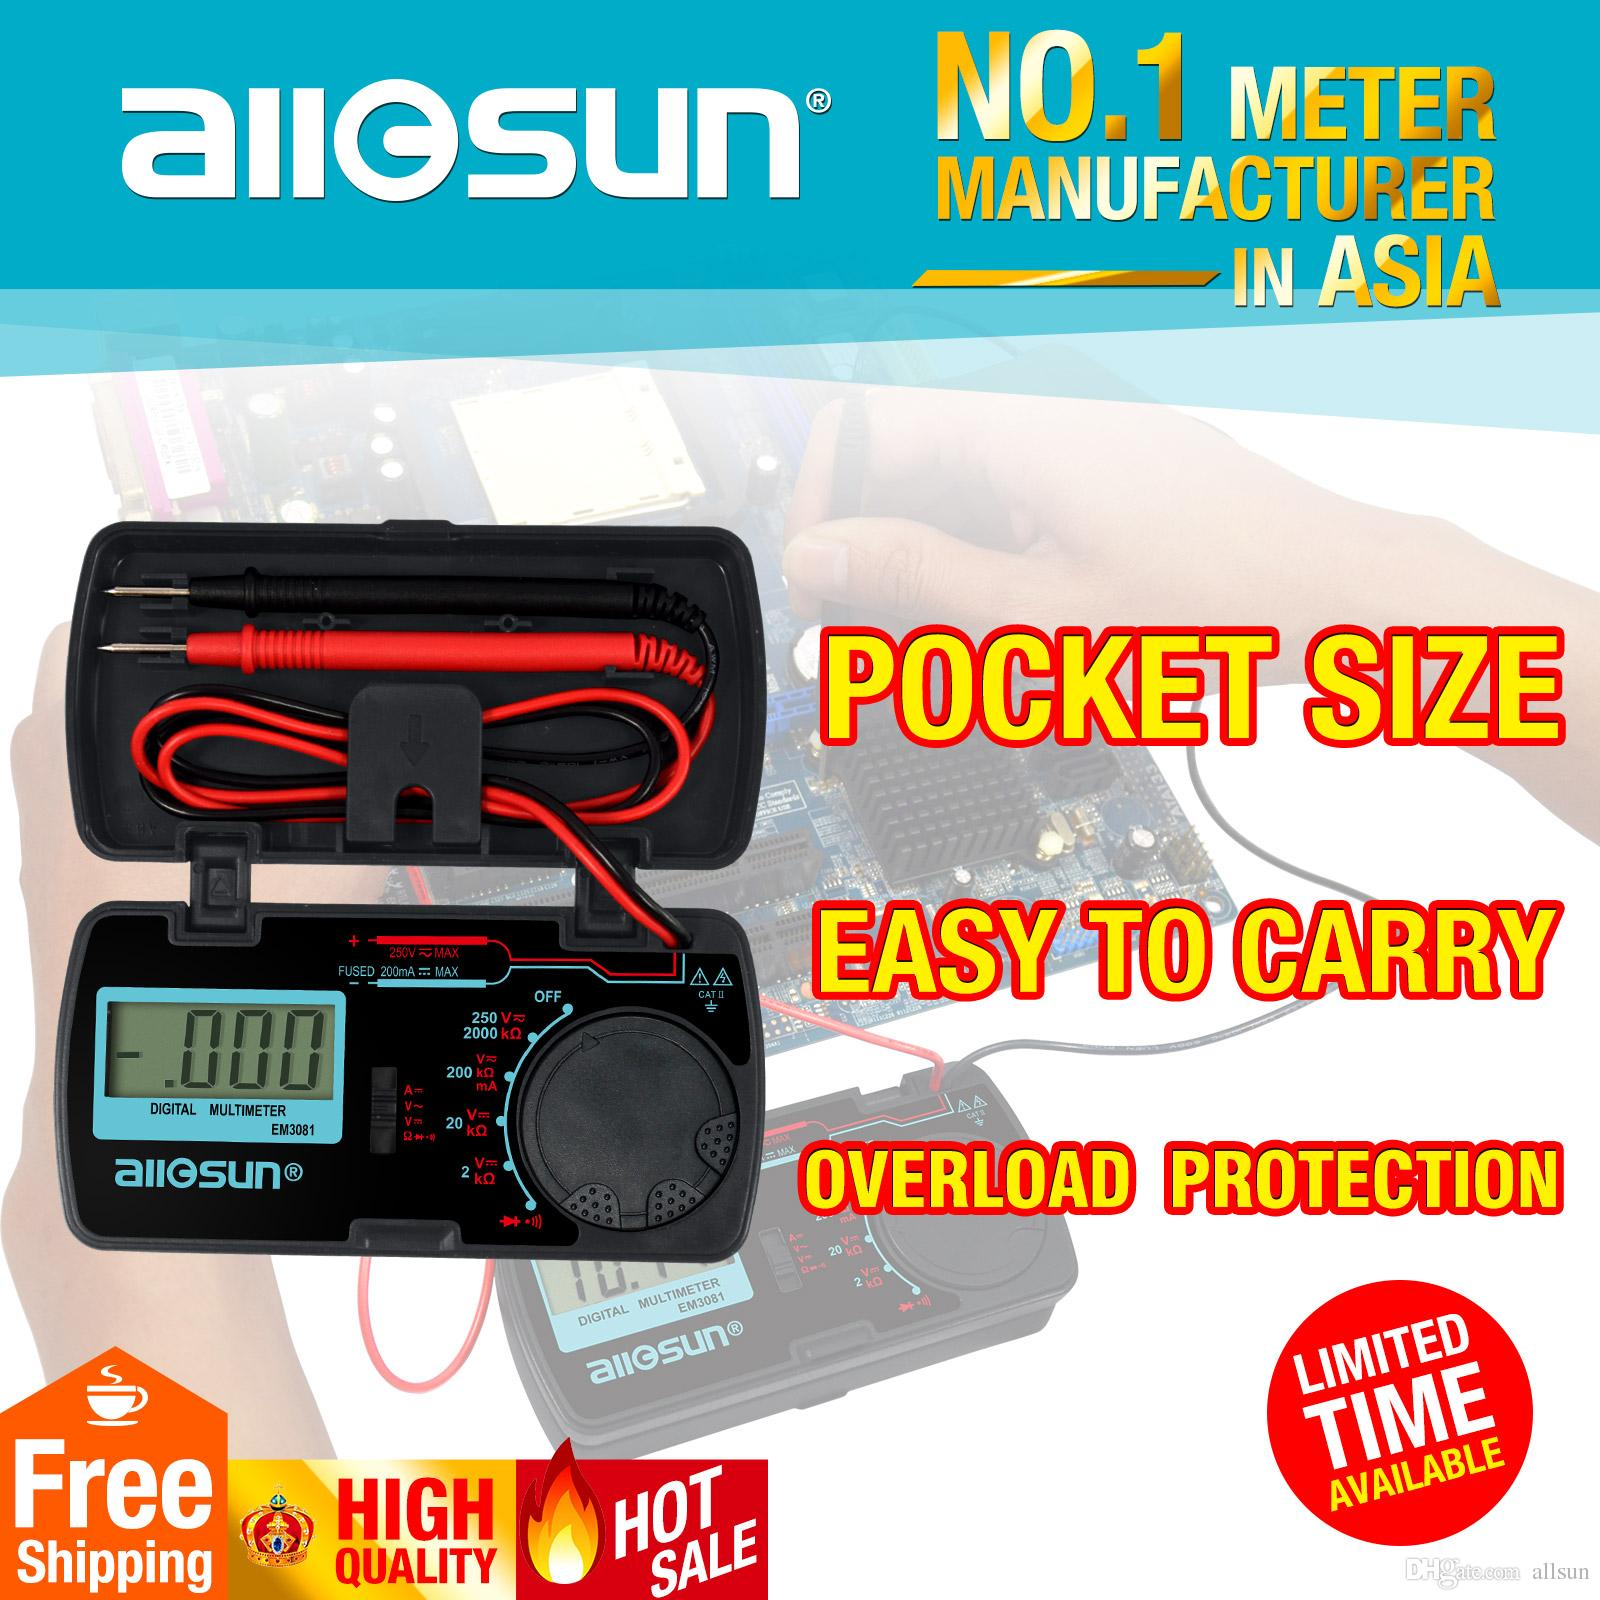 2018 Mini Lcd Digital Multimeter Dc Ac Voltmeter Ammeter Ohm Details About Circuit Tester Multi Auto Range Handheld Dmm Diode And Continuity Accurate Multitester Em3081 From Allsun